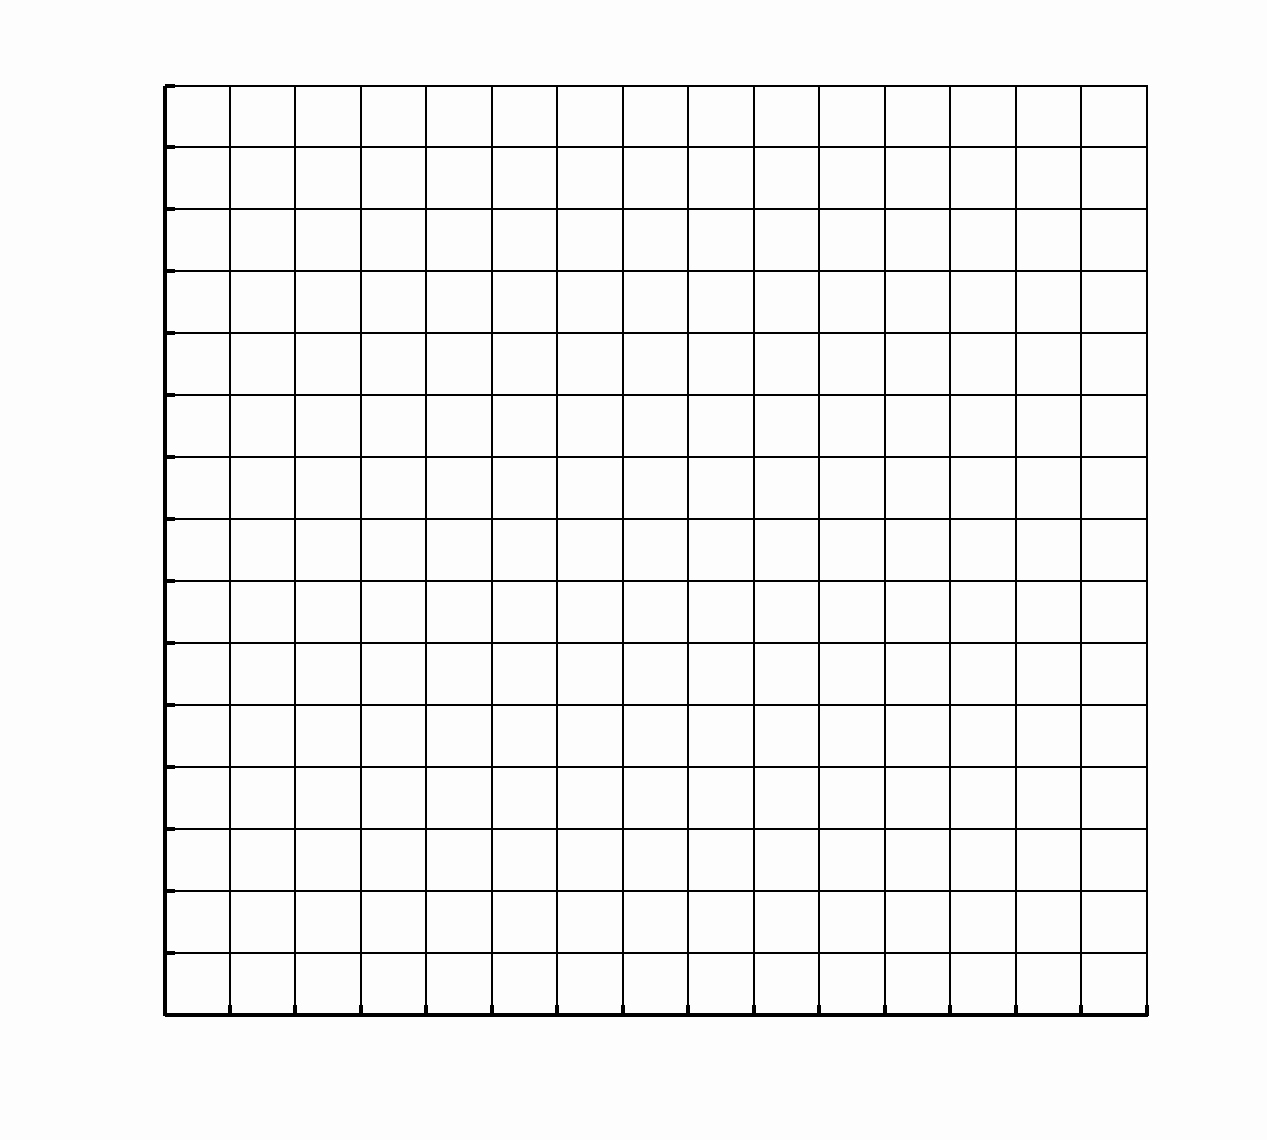 Blank Sudoku Grid Printable Elegant Worksheet Blank Grids Grass Fedjp Worksheet Study Site